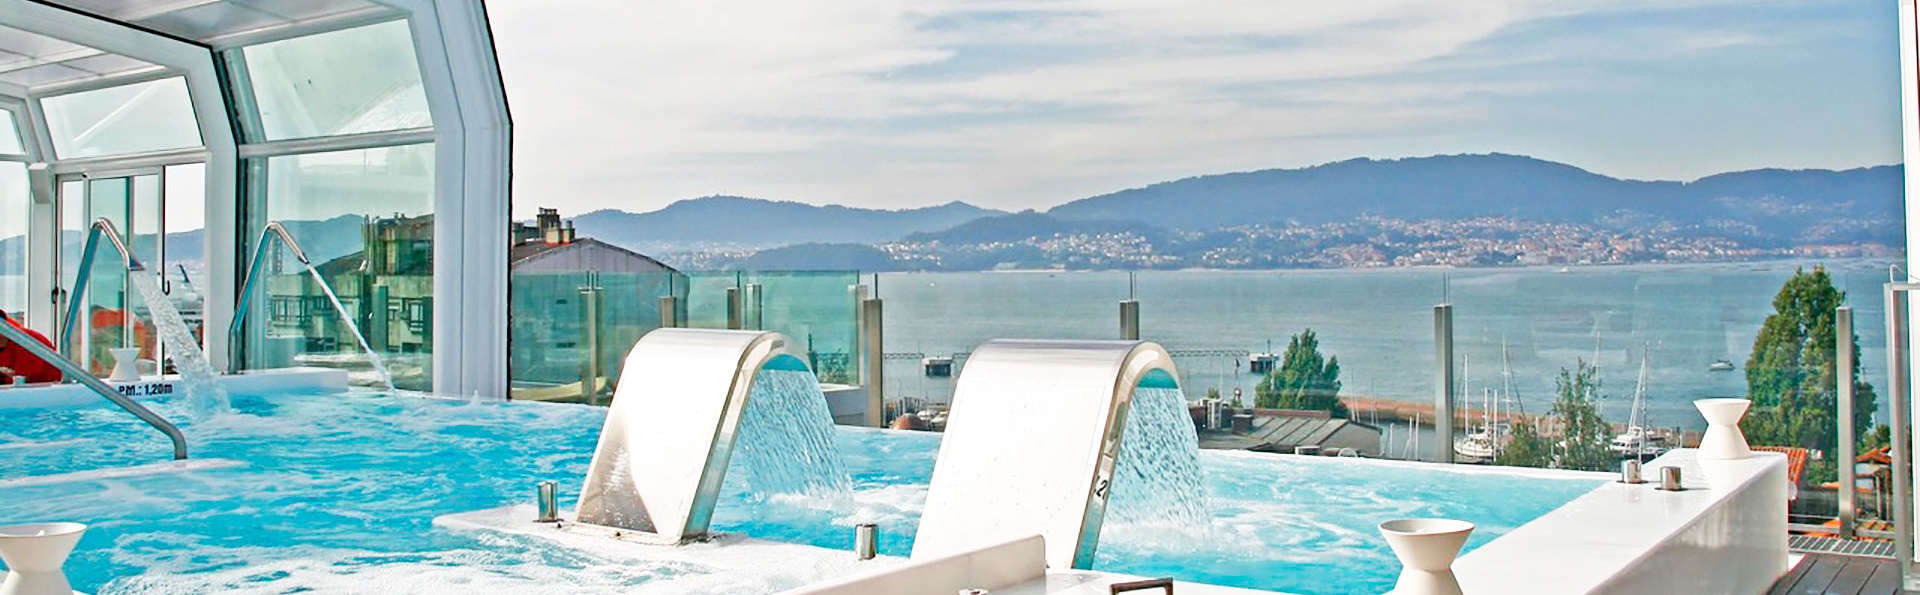 Gran Hotel Nagari Boutique & Spa - EDIT_skyline.jpg